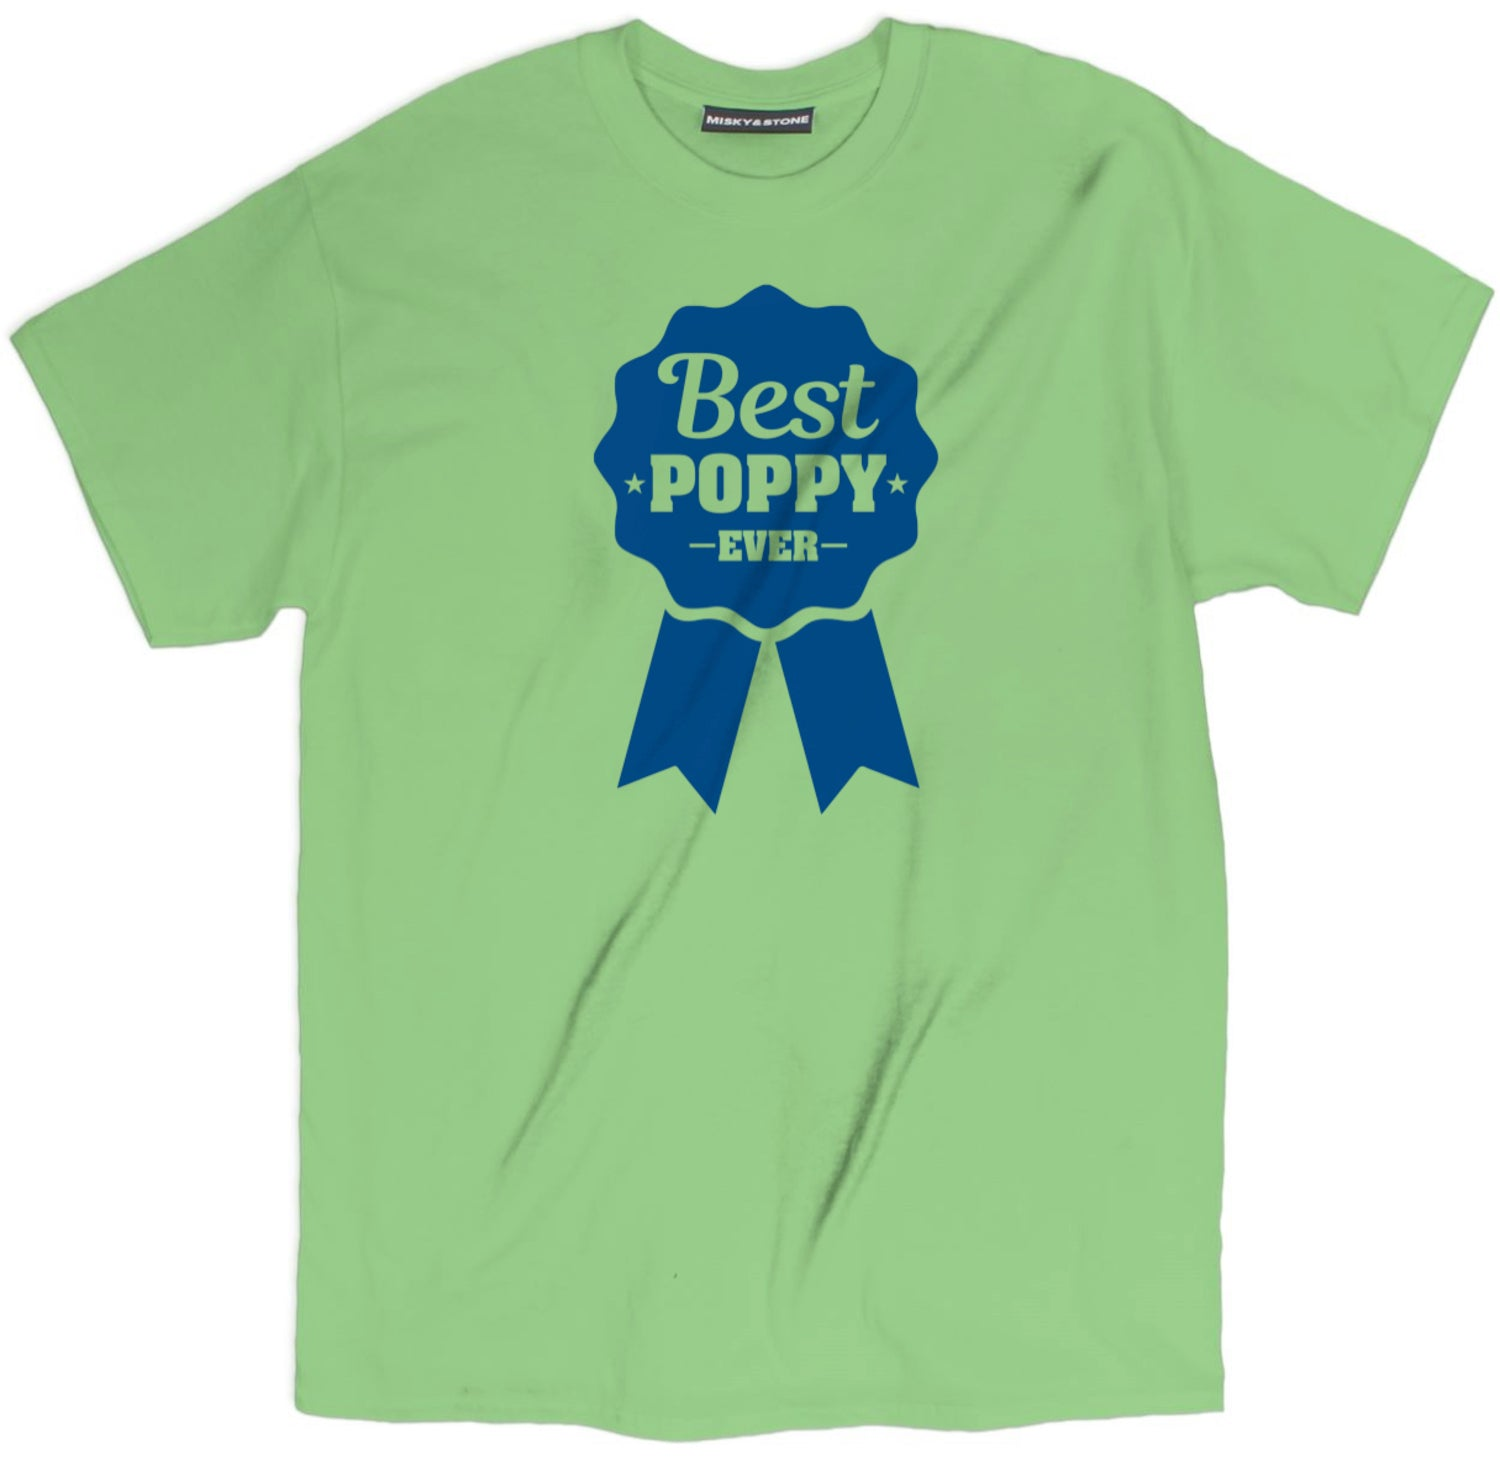 best poppy ever shirt, fathers day shirts, father's day t shirts, dad shirts, father's day shirt, funny dad shirts, fathers day tee shirts, funny fathers day shirts, best dad t shirt, best dad shirts,